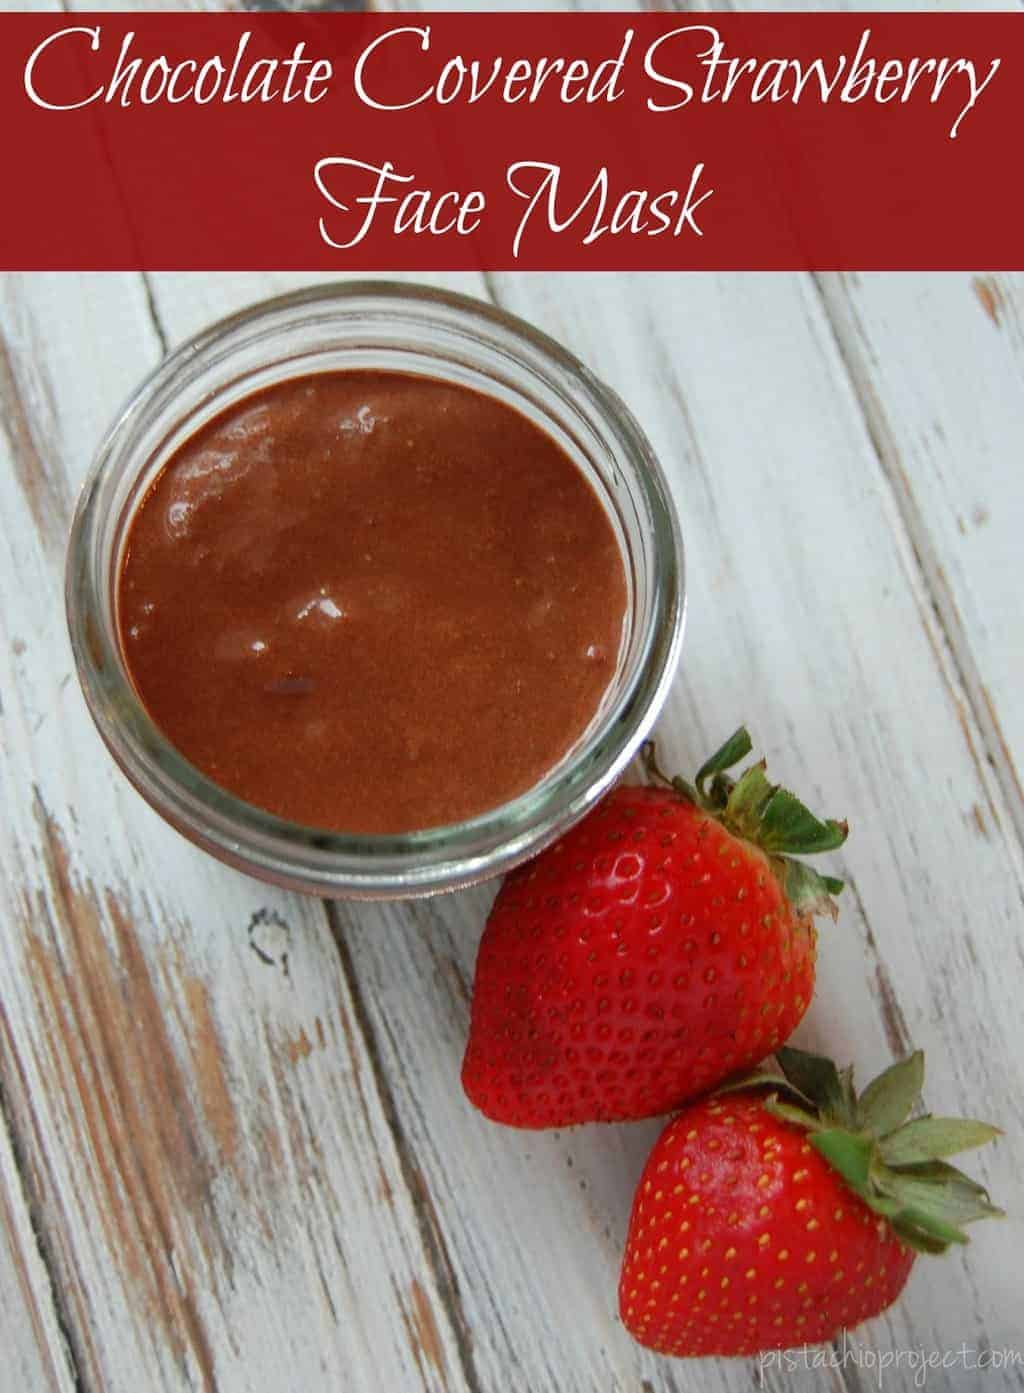 Chocolate Covered Strawberry Face Mask - Not only is this face mask wonderful for your skin, it's also pretty tasty if some of it happens to make it's way into your mouth. #facemask #fruit #chocolatecoveredstrawberry #straweberry #natural